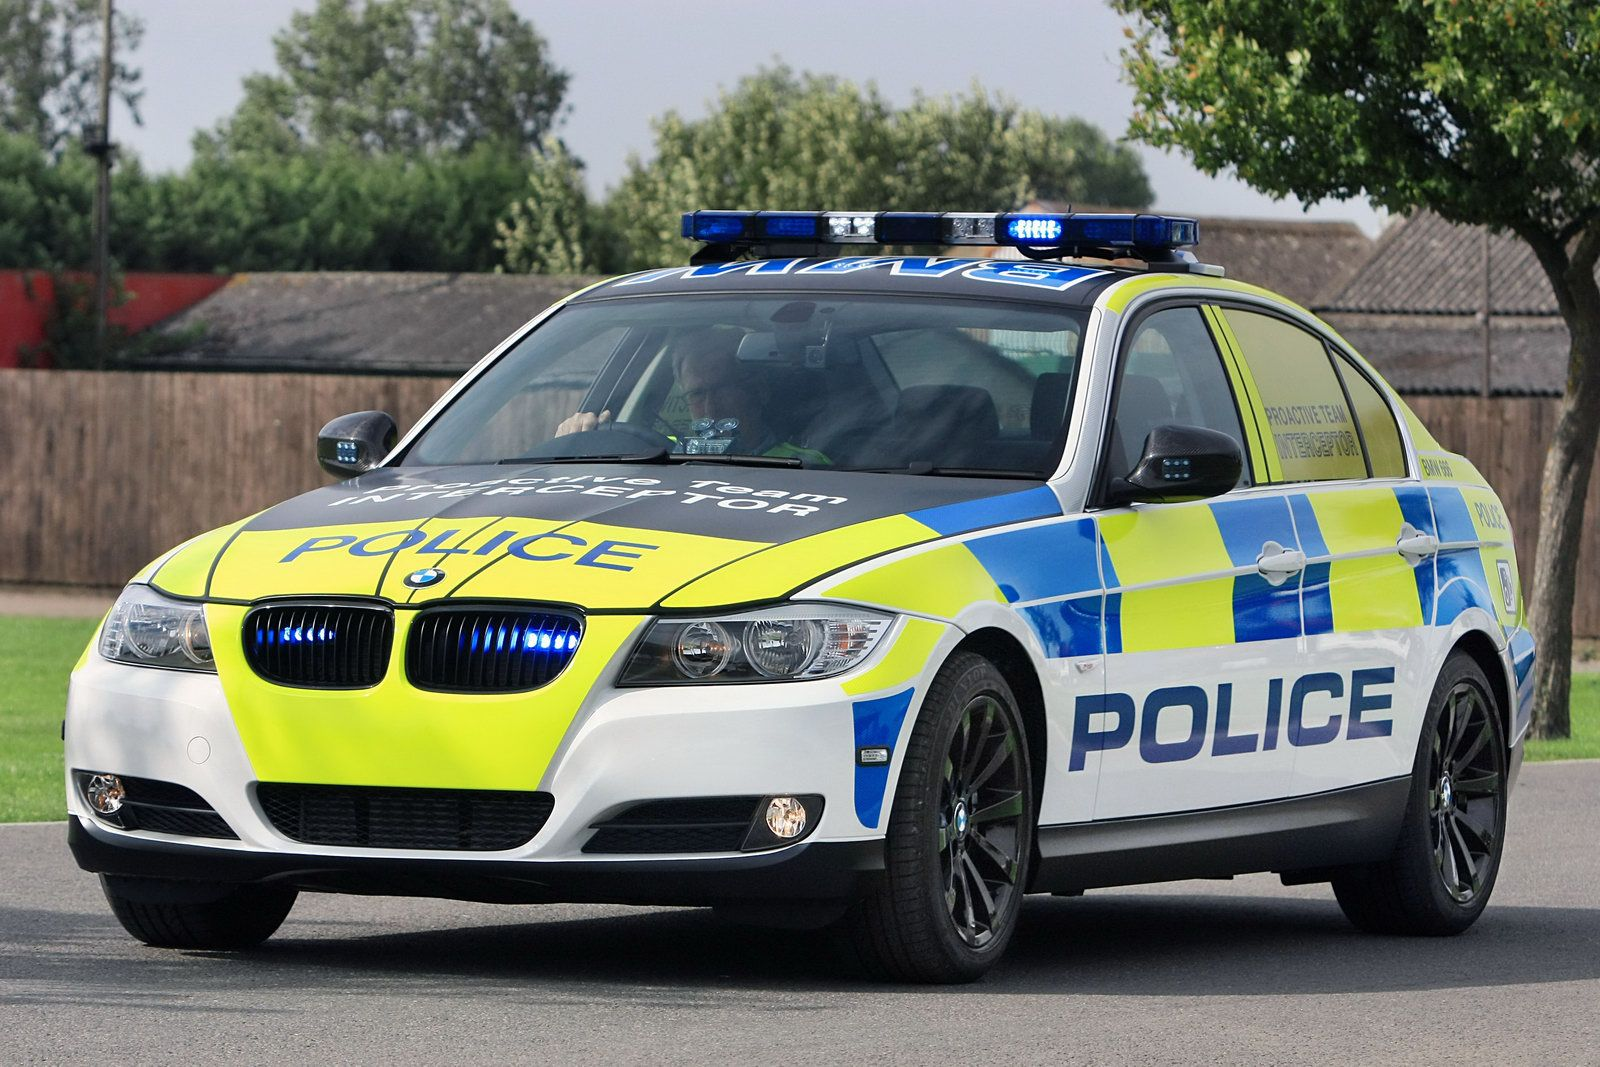 BMW Police Car ☆。☆。JpM ENTERTAINMENT ☆。☆。 | FOREIGN POLICE ...